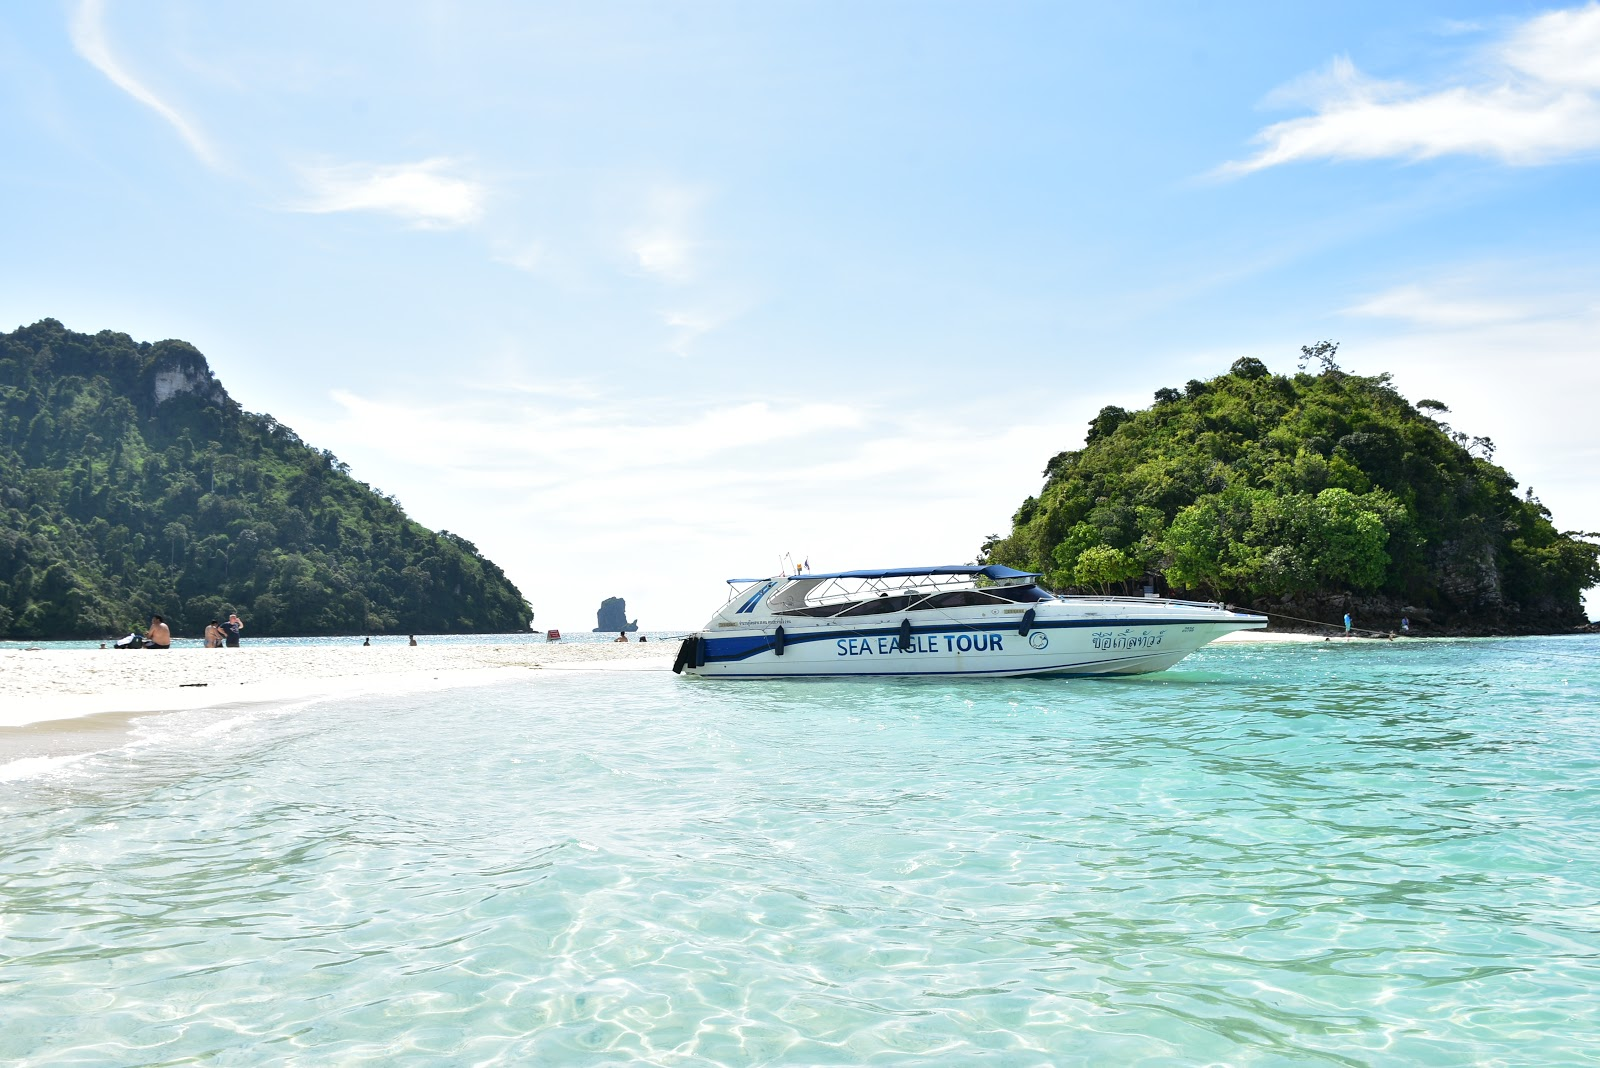 4 Island Speed Boat Tour by Sea Eagle